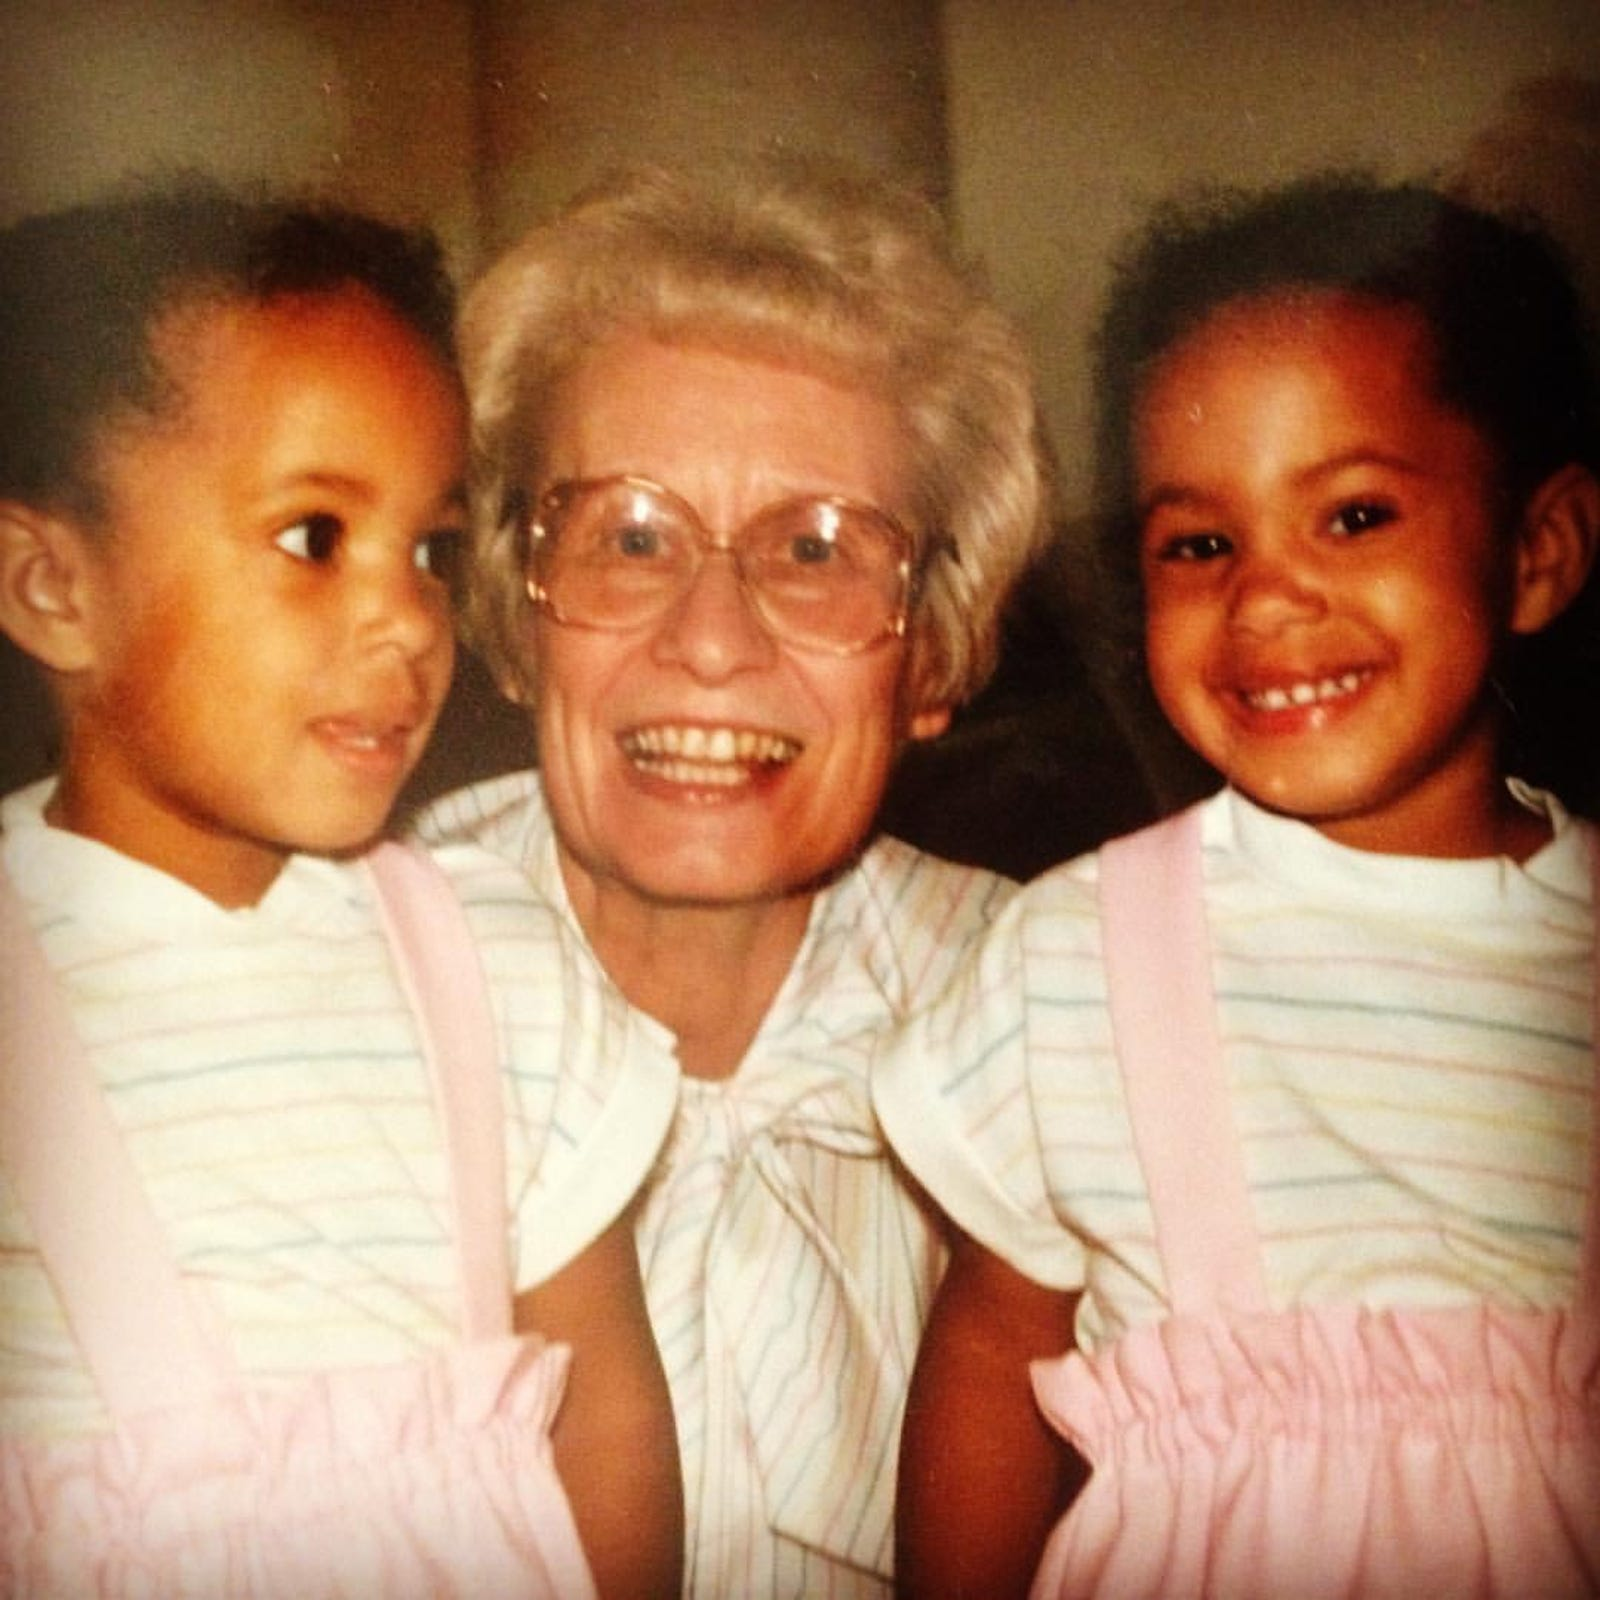 My twin sister Jessica and I with Gram, my maternal grandmother Evelyn Hall, in California in the late 1980s.